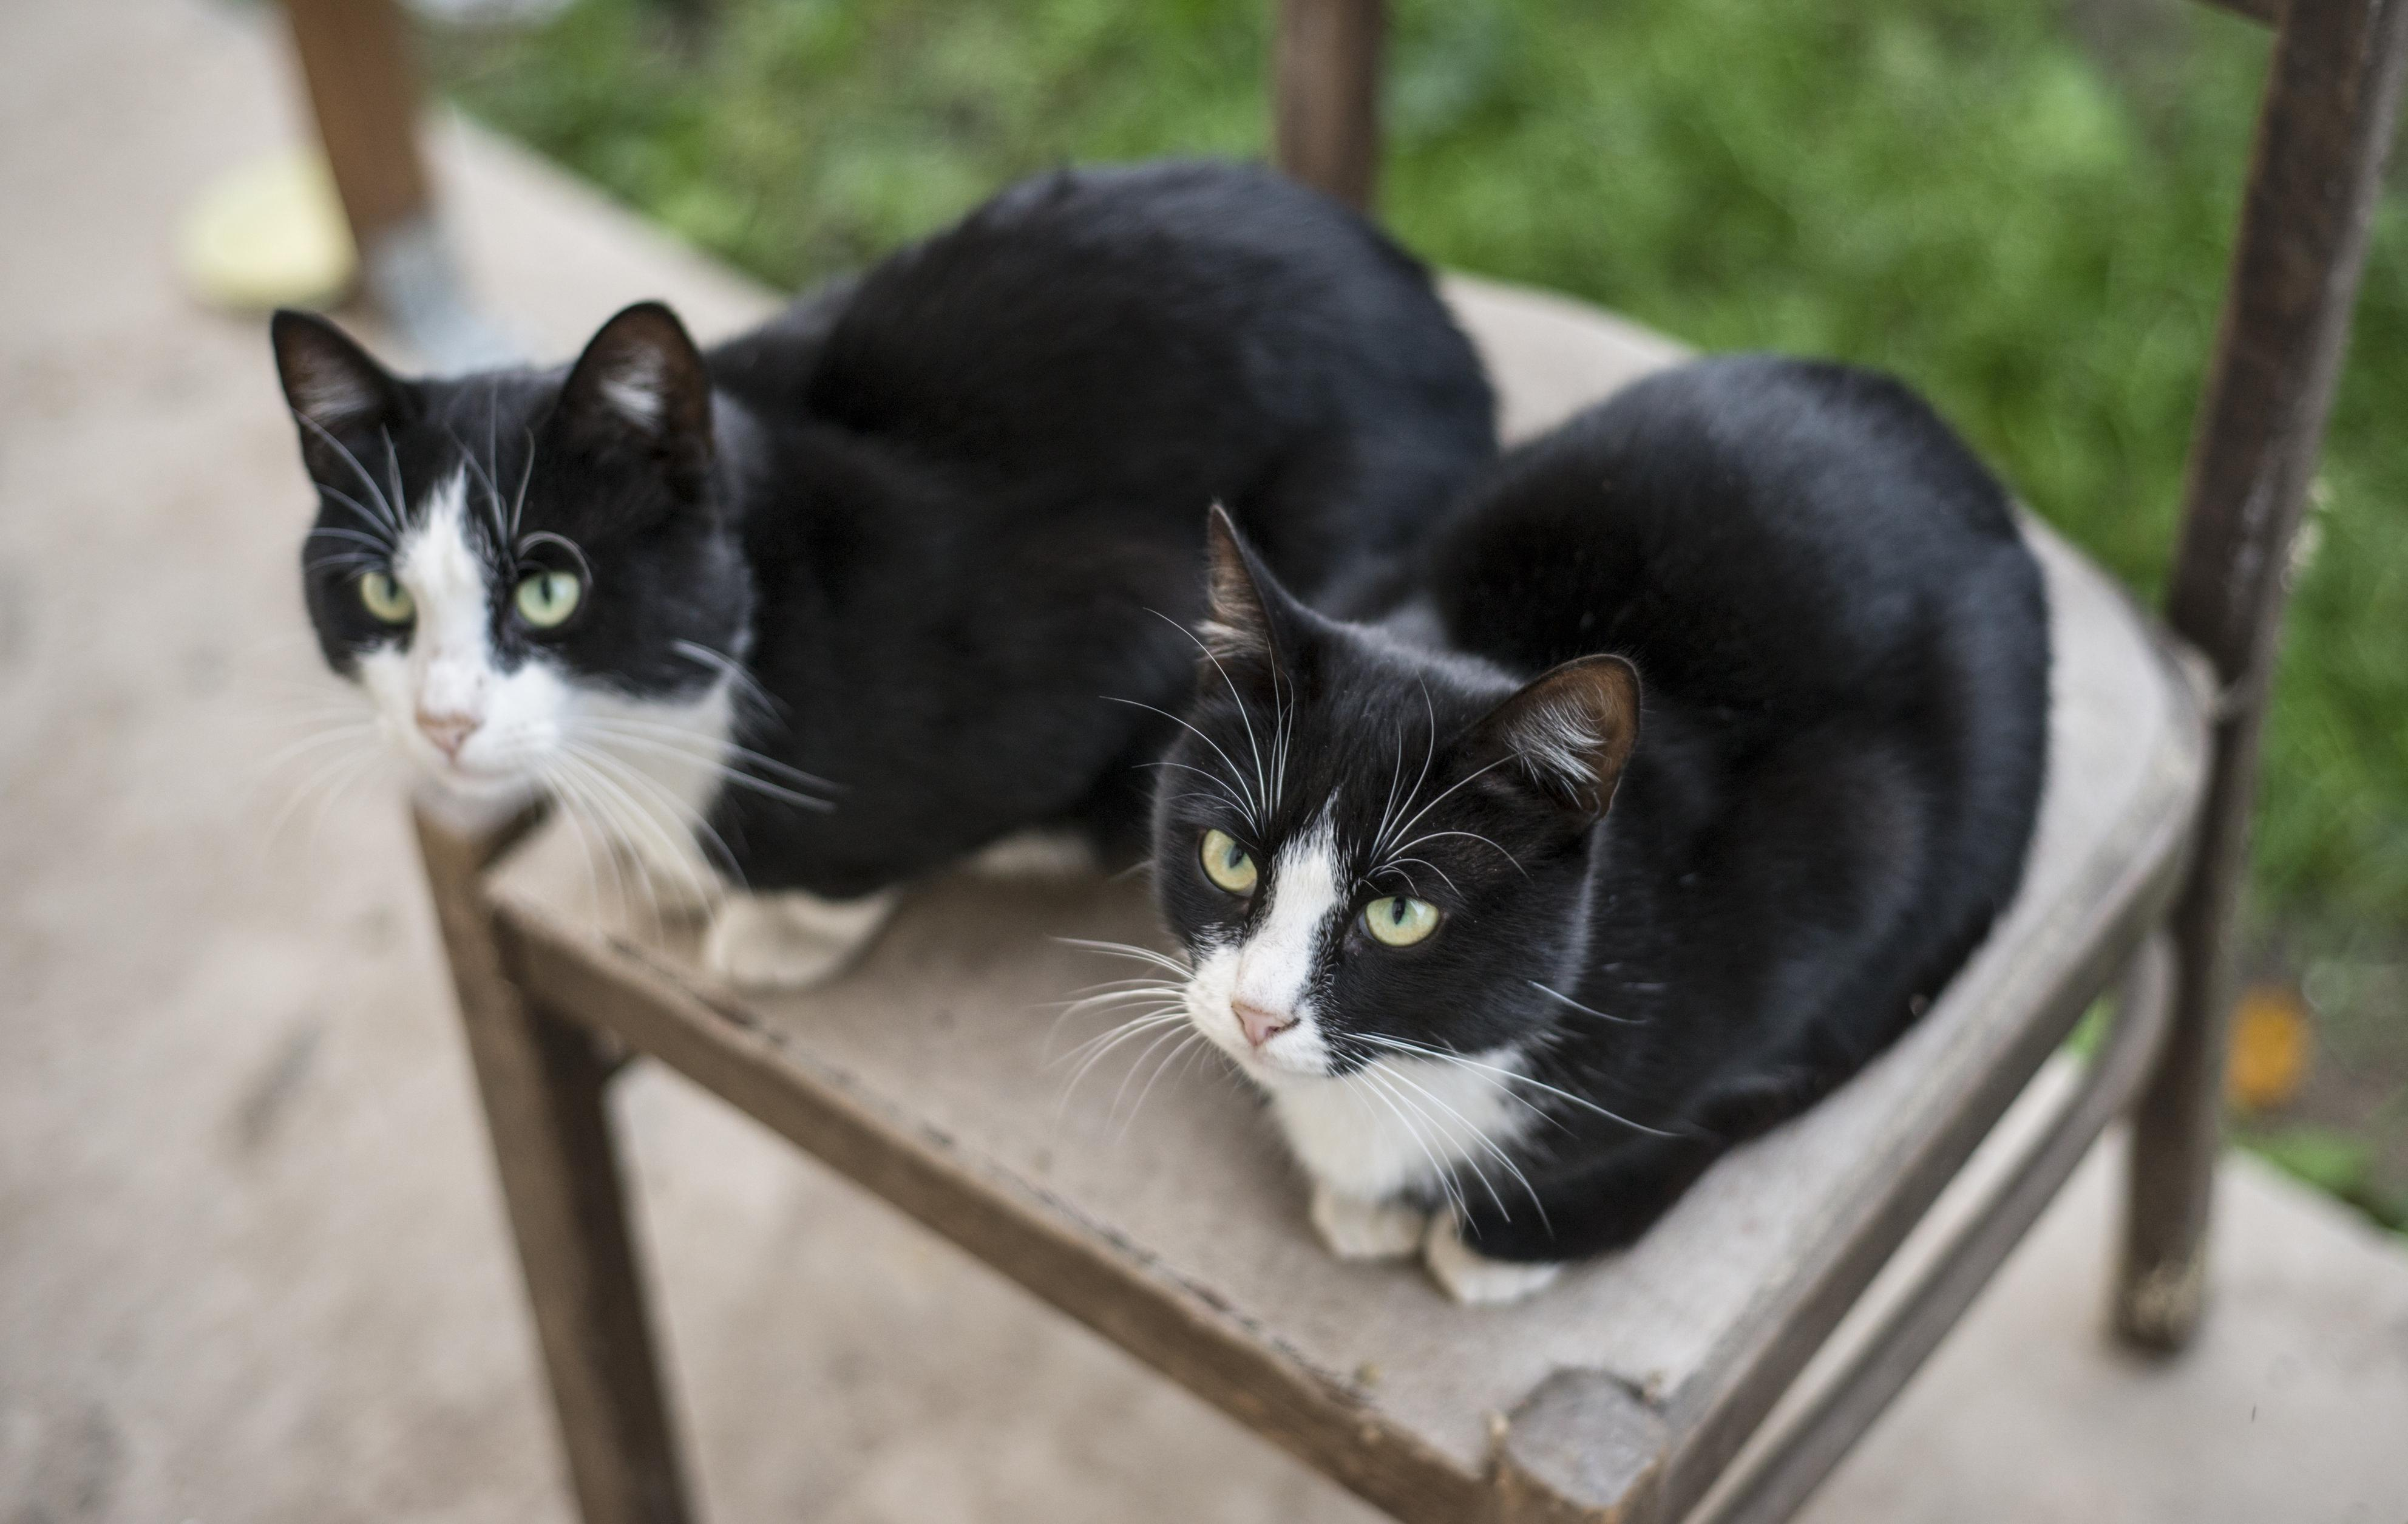 two identical black and white cats